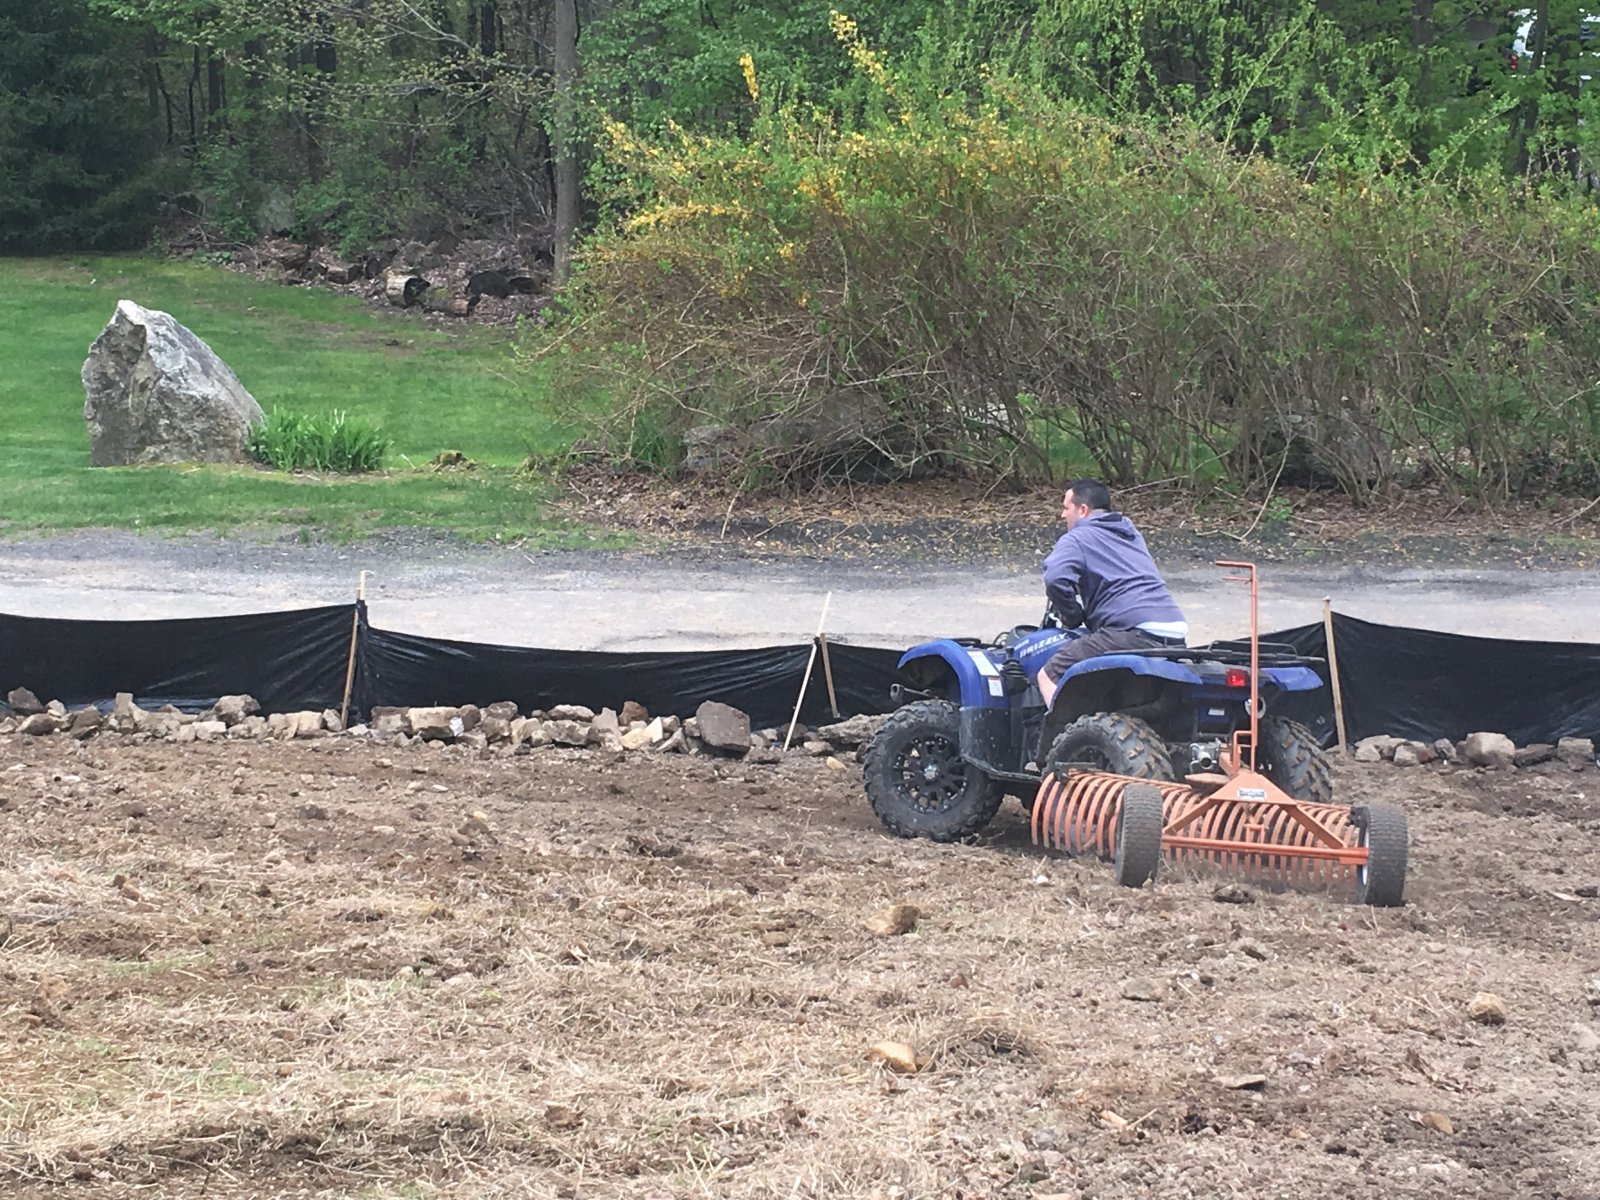 Smoothing out Dirt with ATV Rake